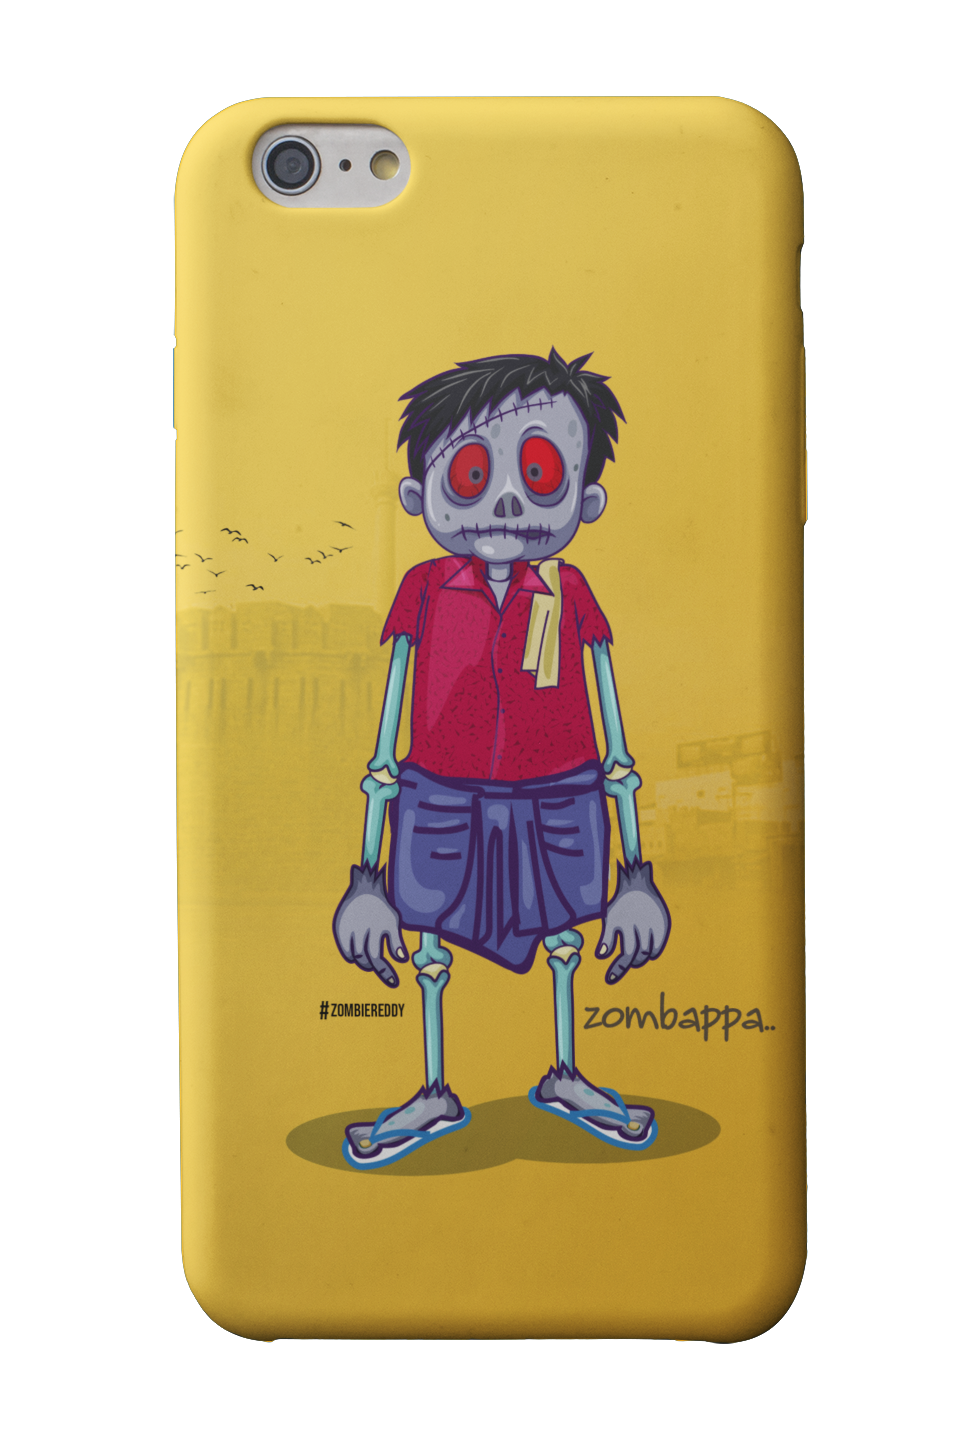 Zombappa Phone Case - Mad Monkey